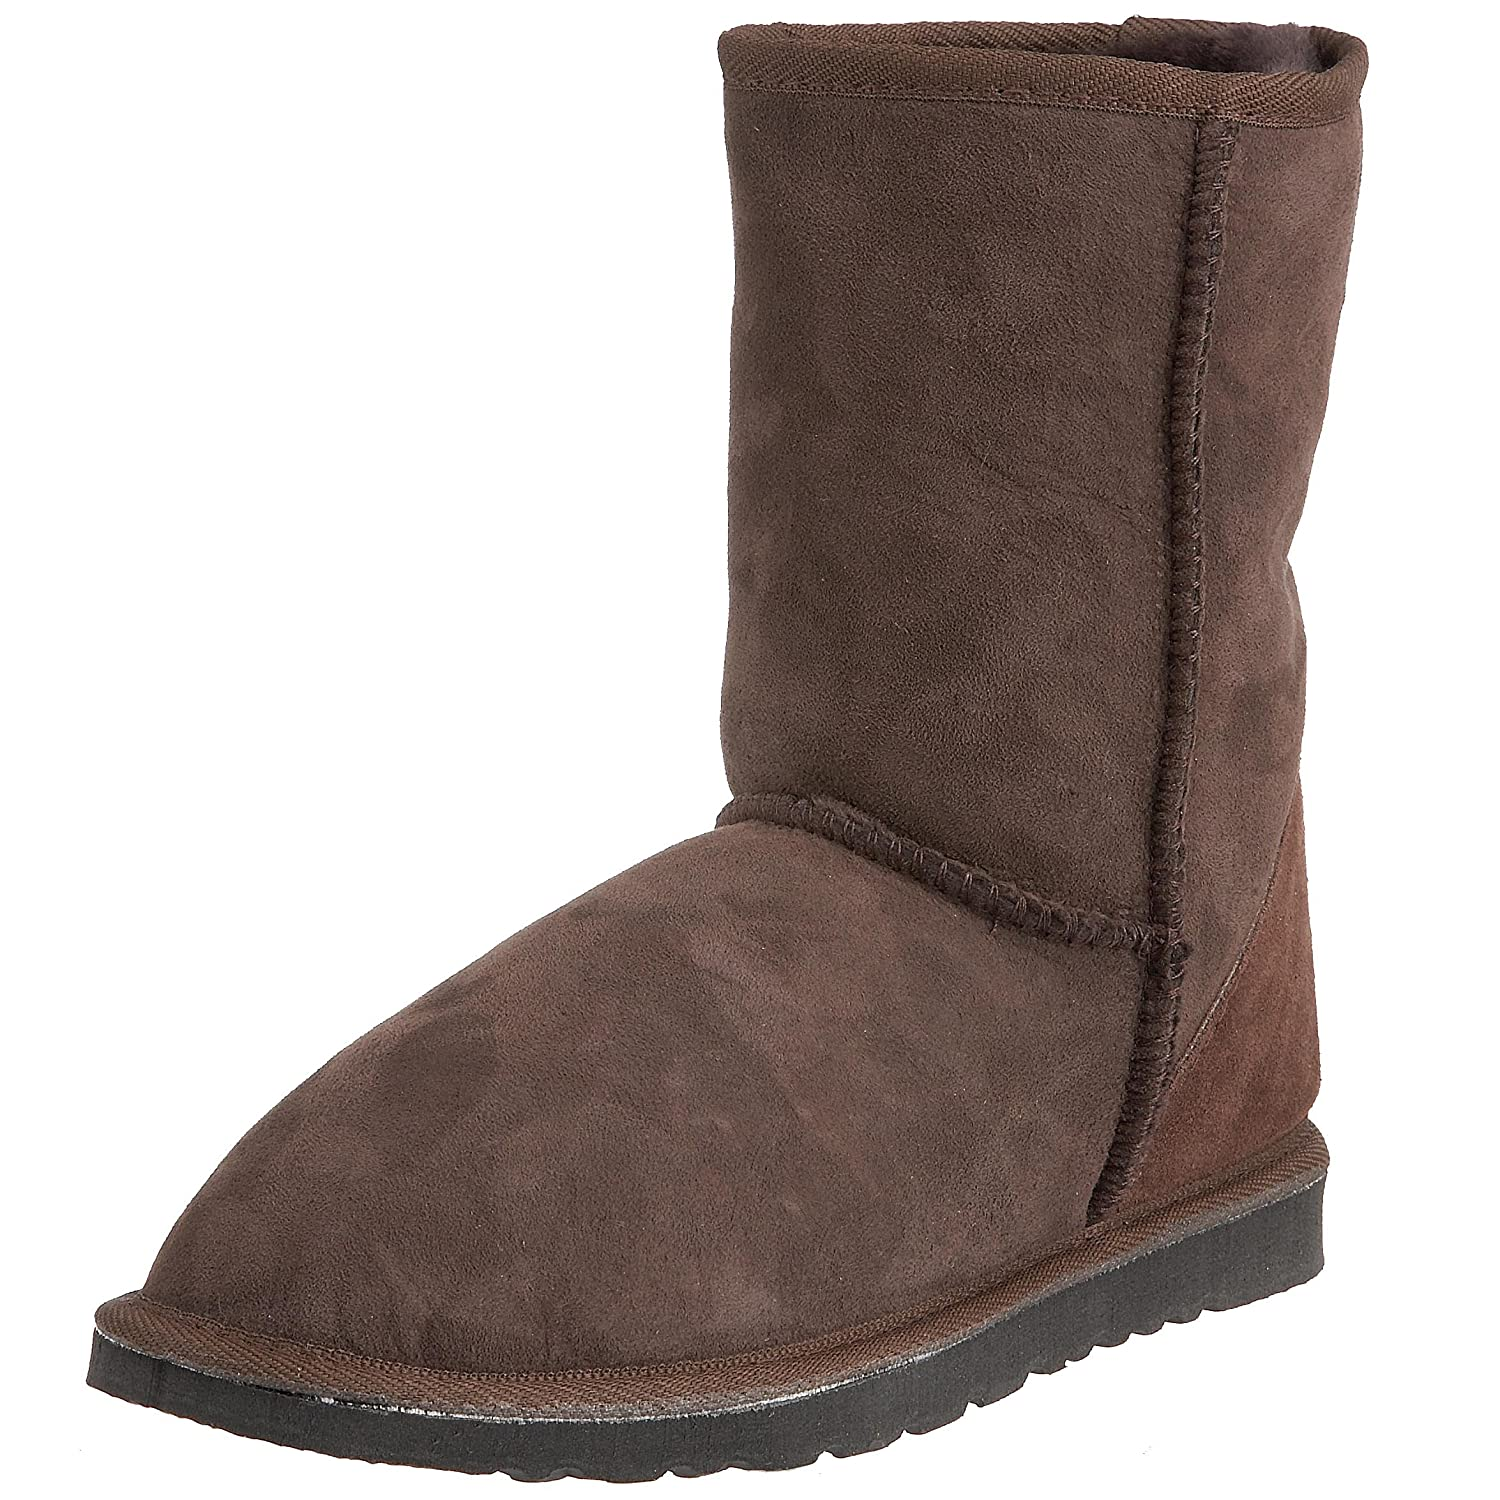 Koolaburra Short Classic Sheepskin Boots Shoes